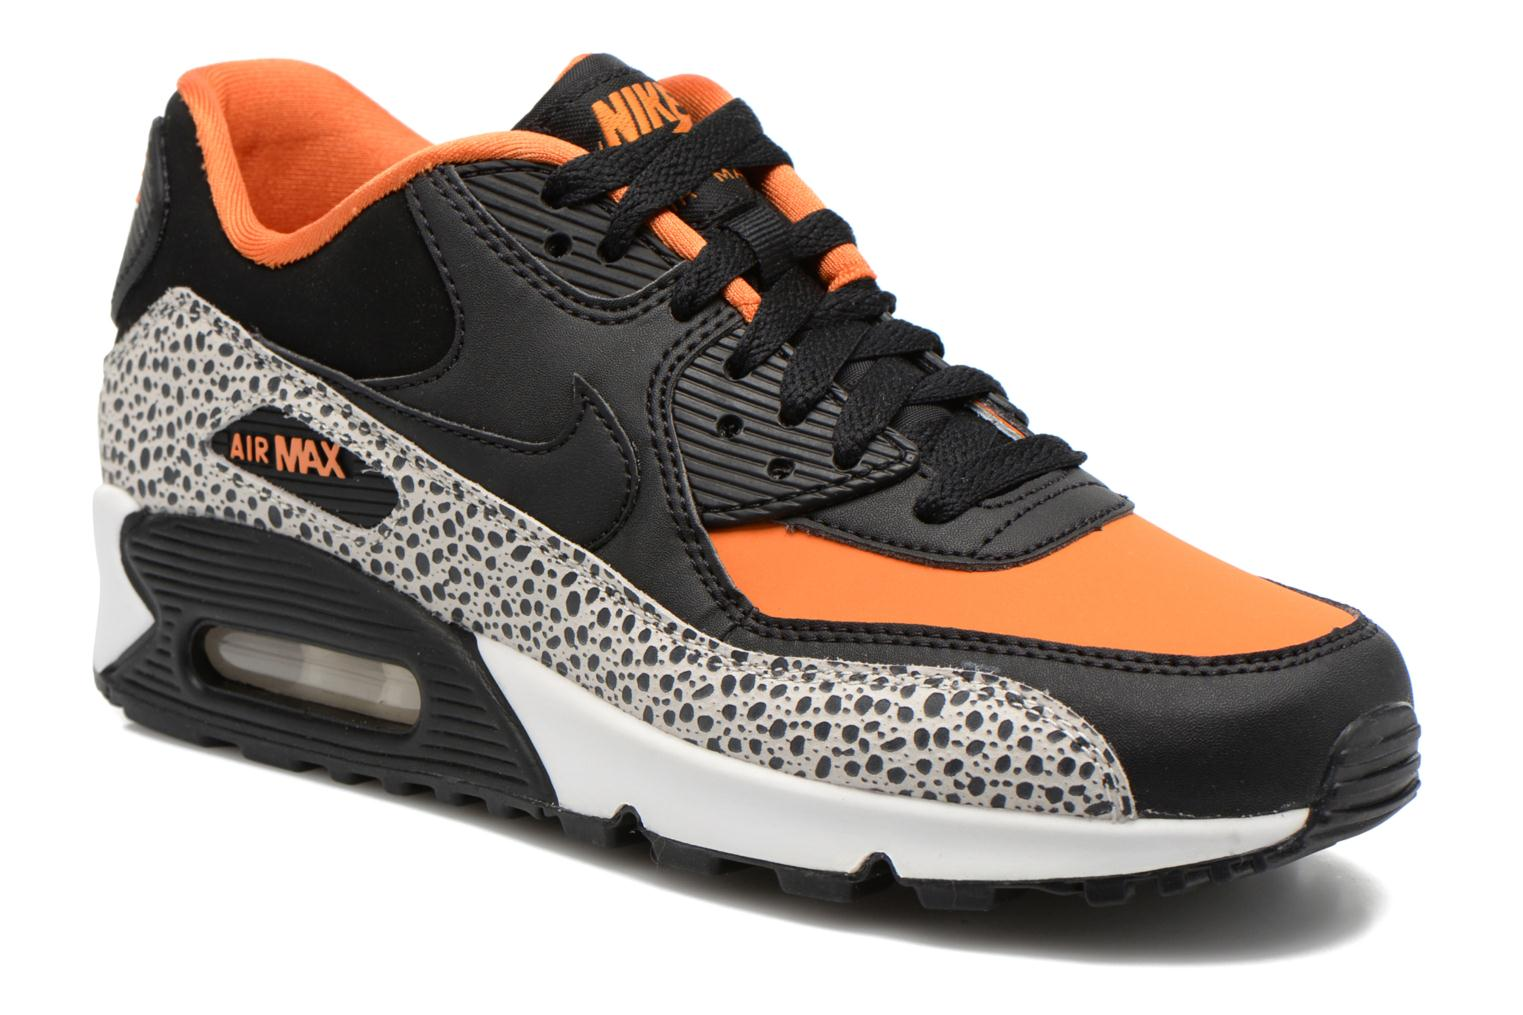 Air Max 90 Safari (Gs) by Nike Multicolor